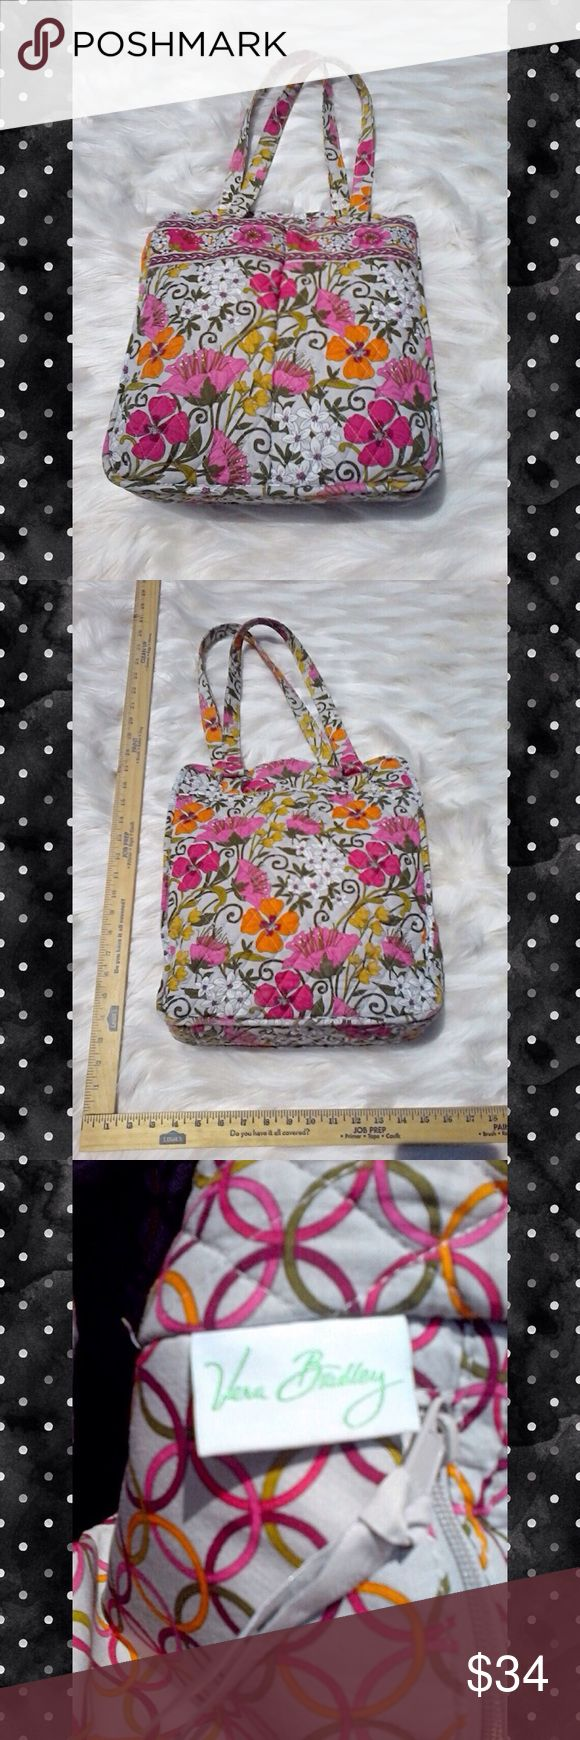 VERA BRADLY FLORAL SHOLDER BUCKET TOTE This is a simple but sweet Vera Bradley tote great for all your summer adventures & big enough to hold everything you need prefect for that polka dot dress or or Just day on the beach with friends! Vera Bradley Bags Totes